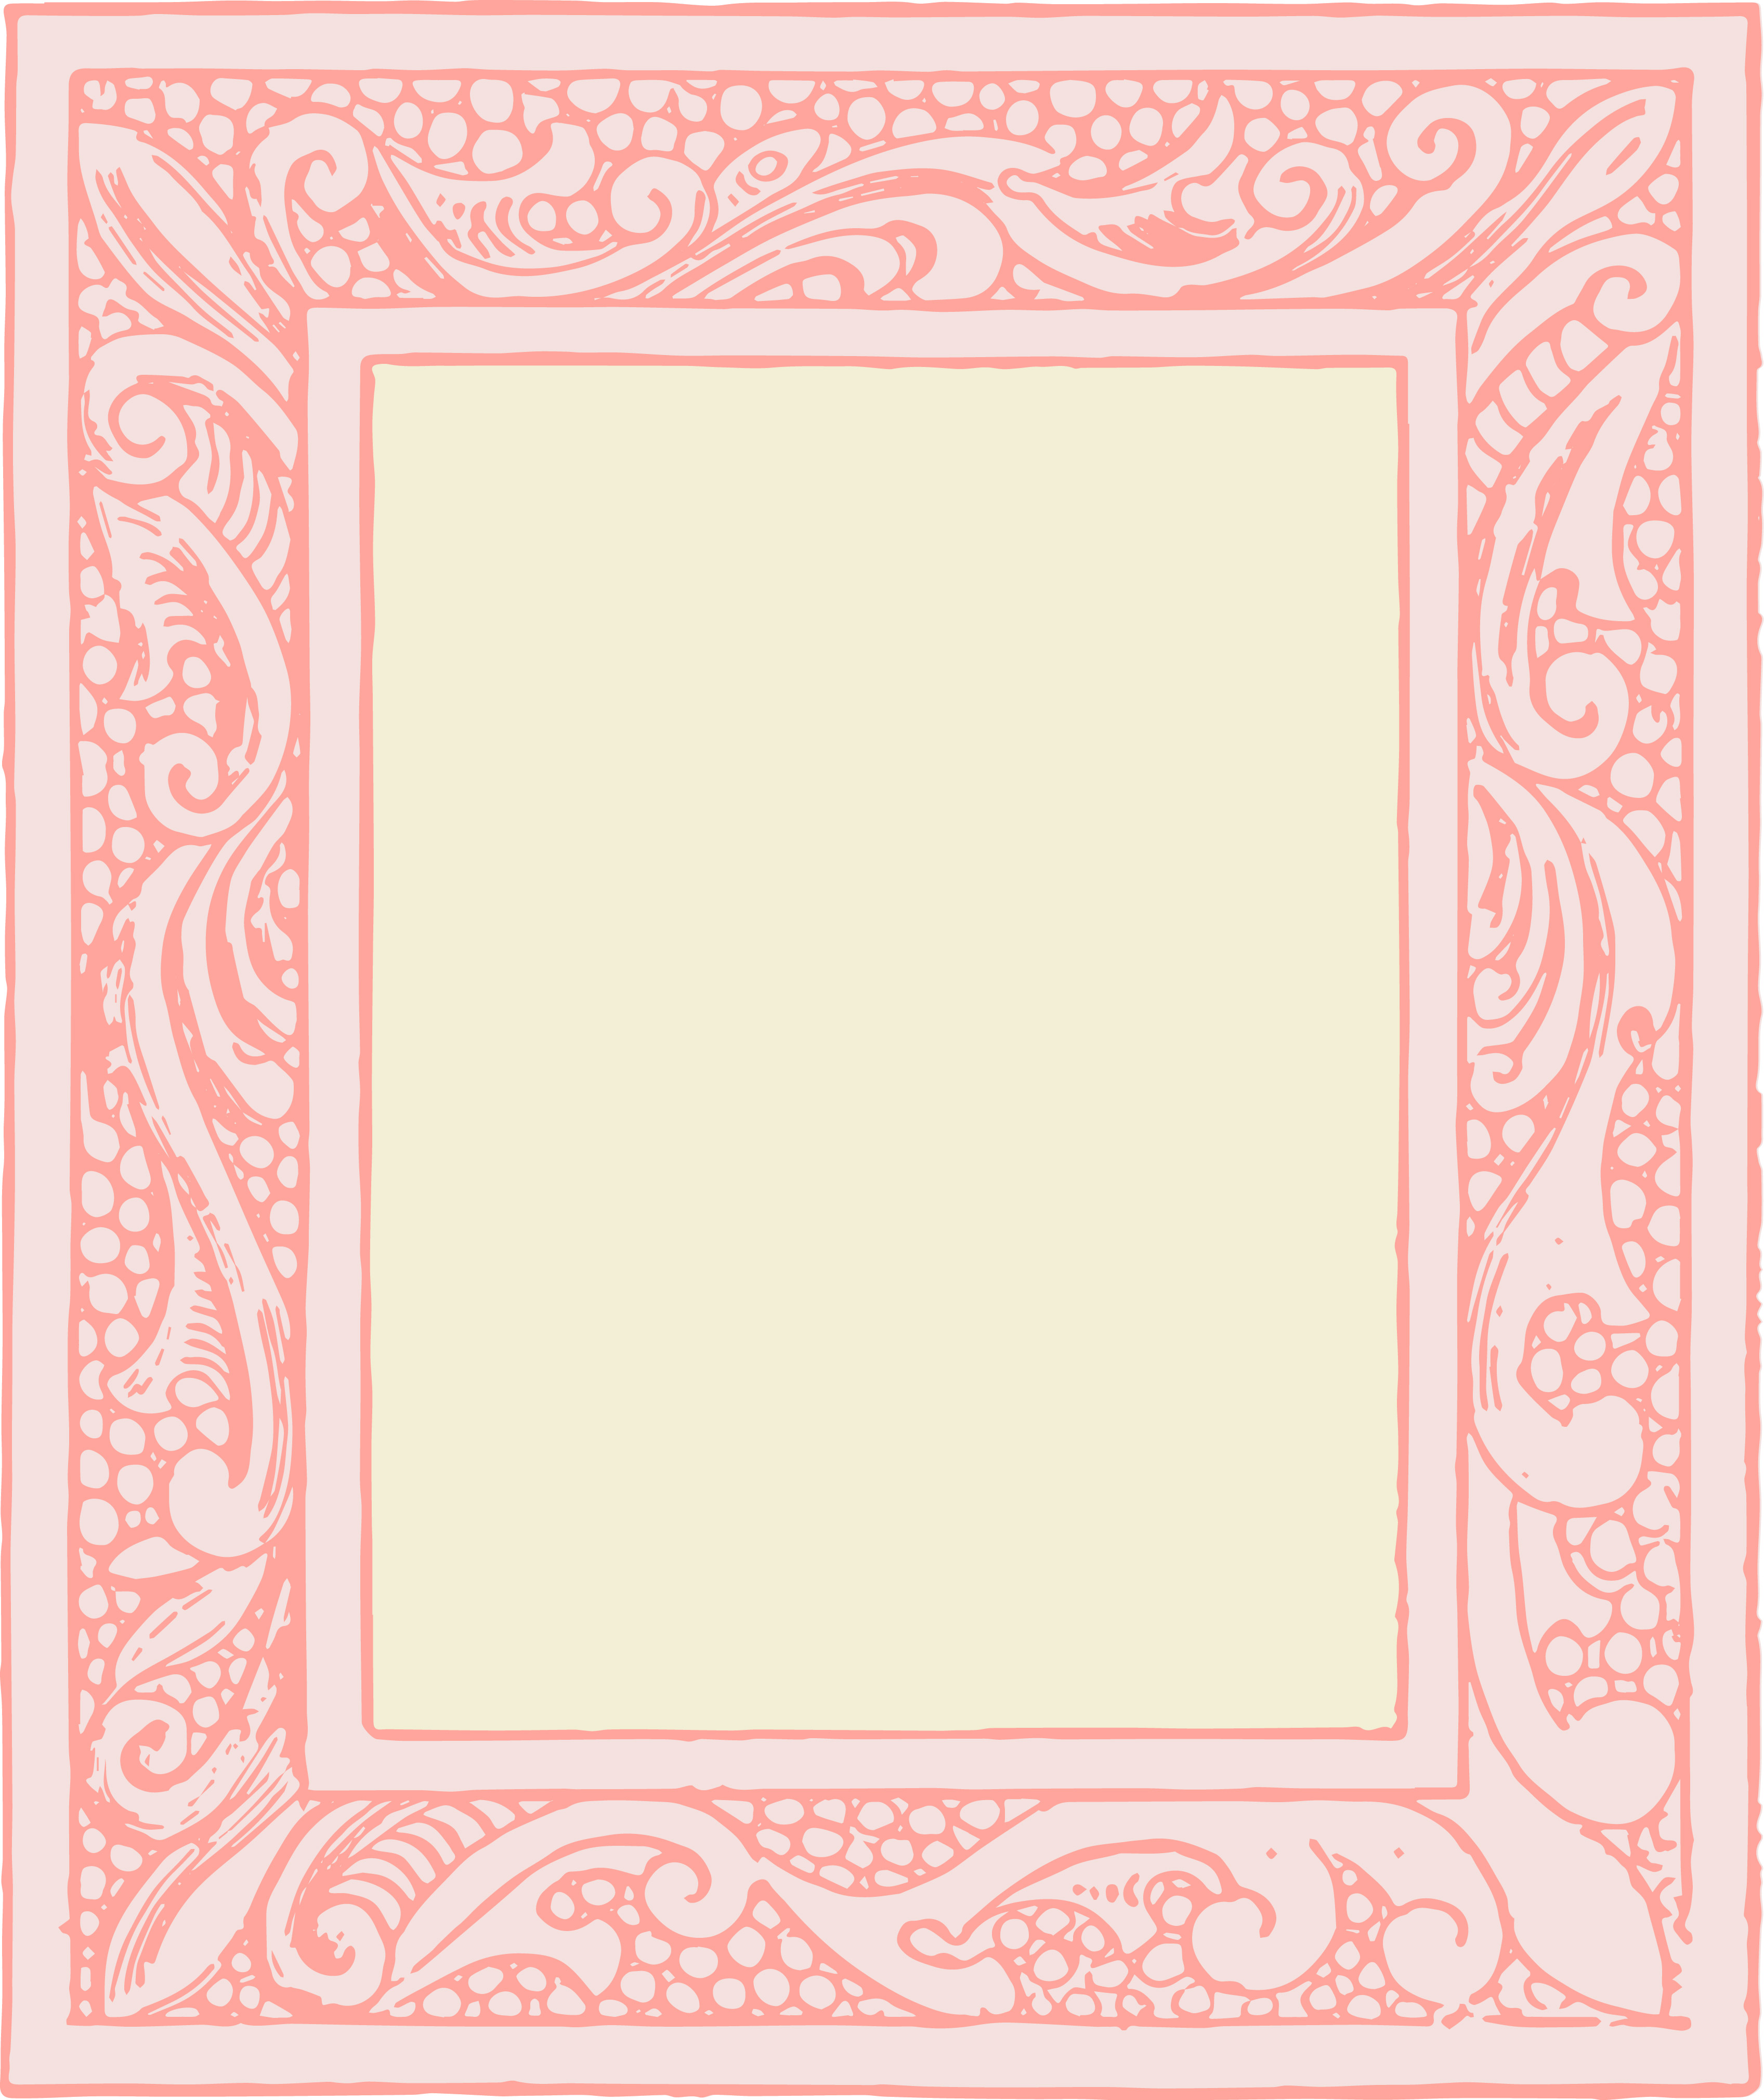 Free Vector Clipart Vintage Frames Oh So Nifty Vintage